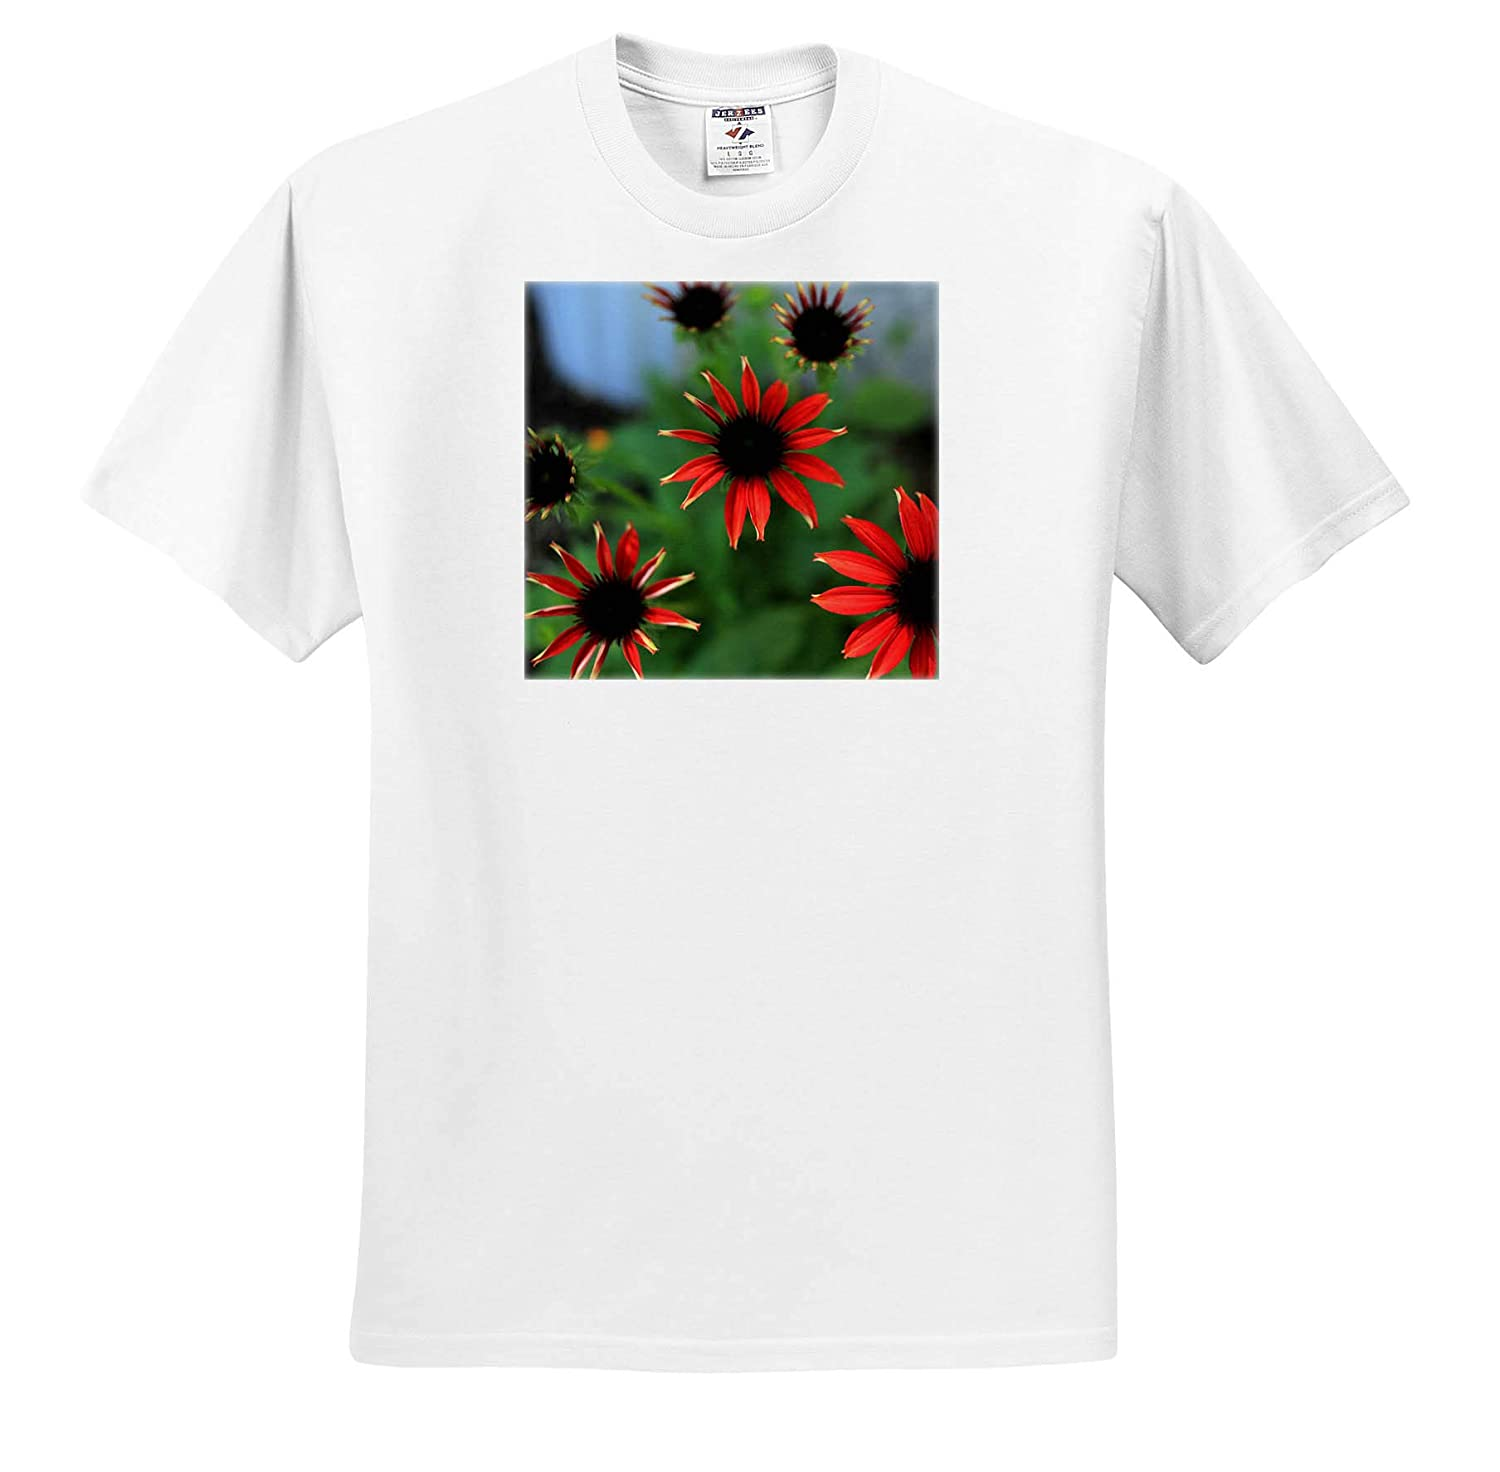 ts/_308730 Photograph of Bright red coneflowers in Bloom 3dRose Stamp City Flowers - Adult T-Shirt XL